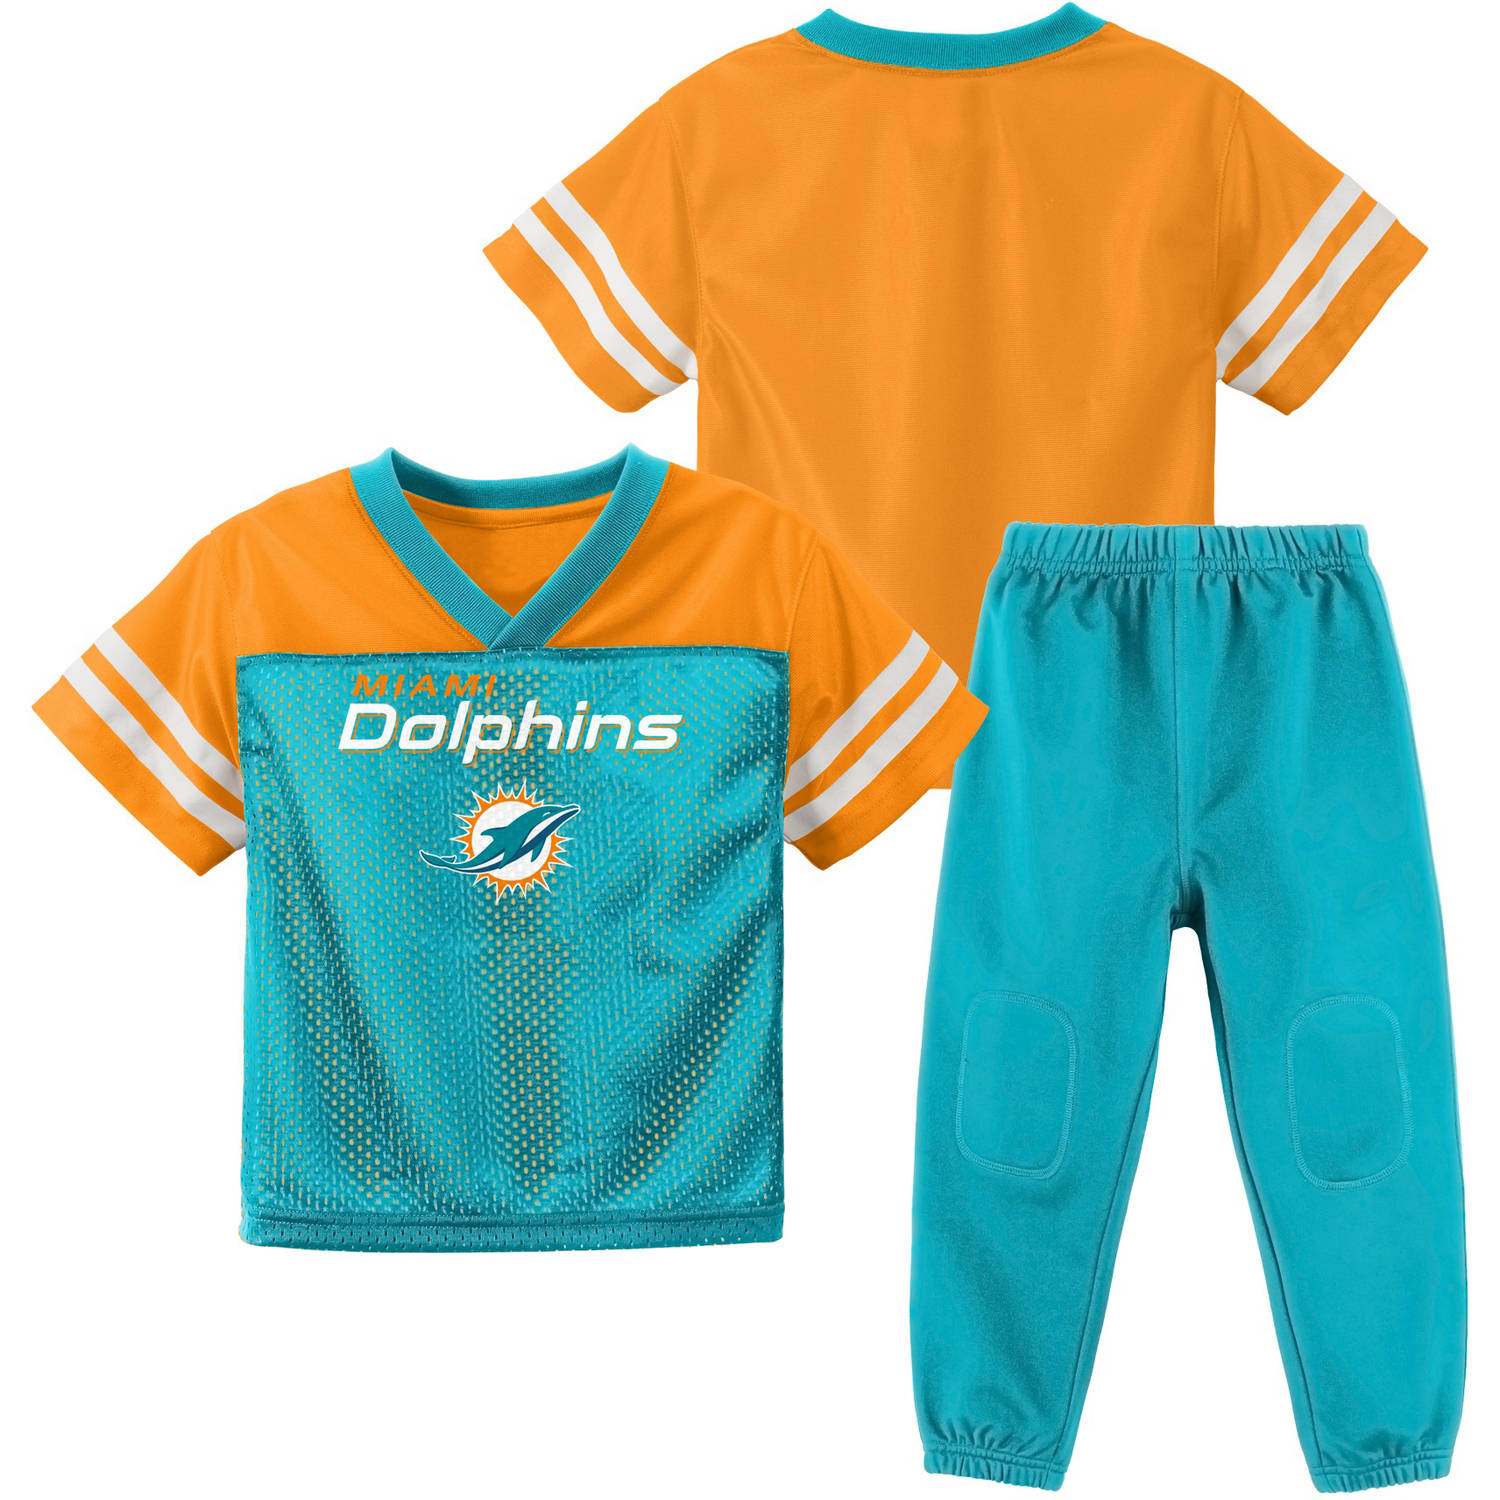 NFL Miami Dolphins Toddler Short Sleeve Top and Pant Set